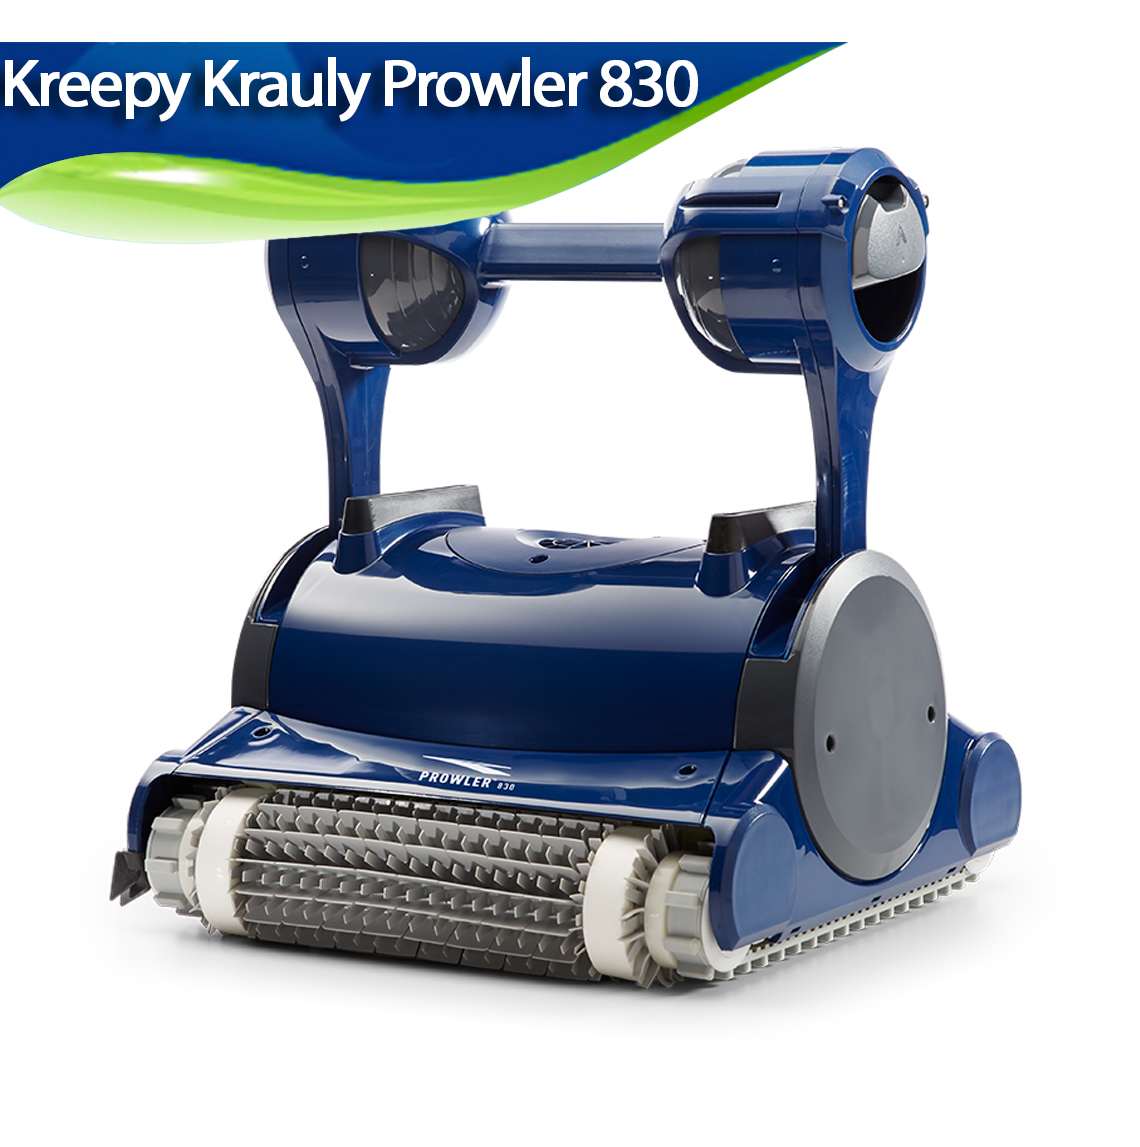 Kreepy Krauly Prowler 830 REVIEW